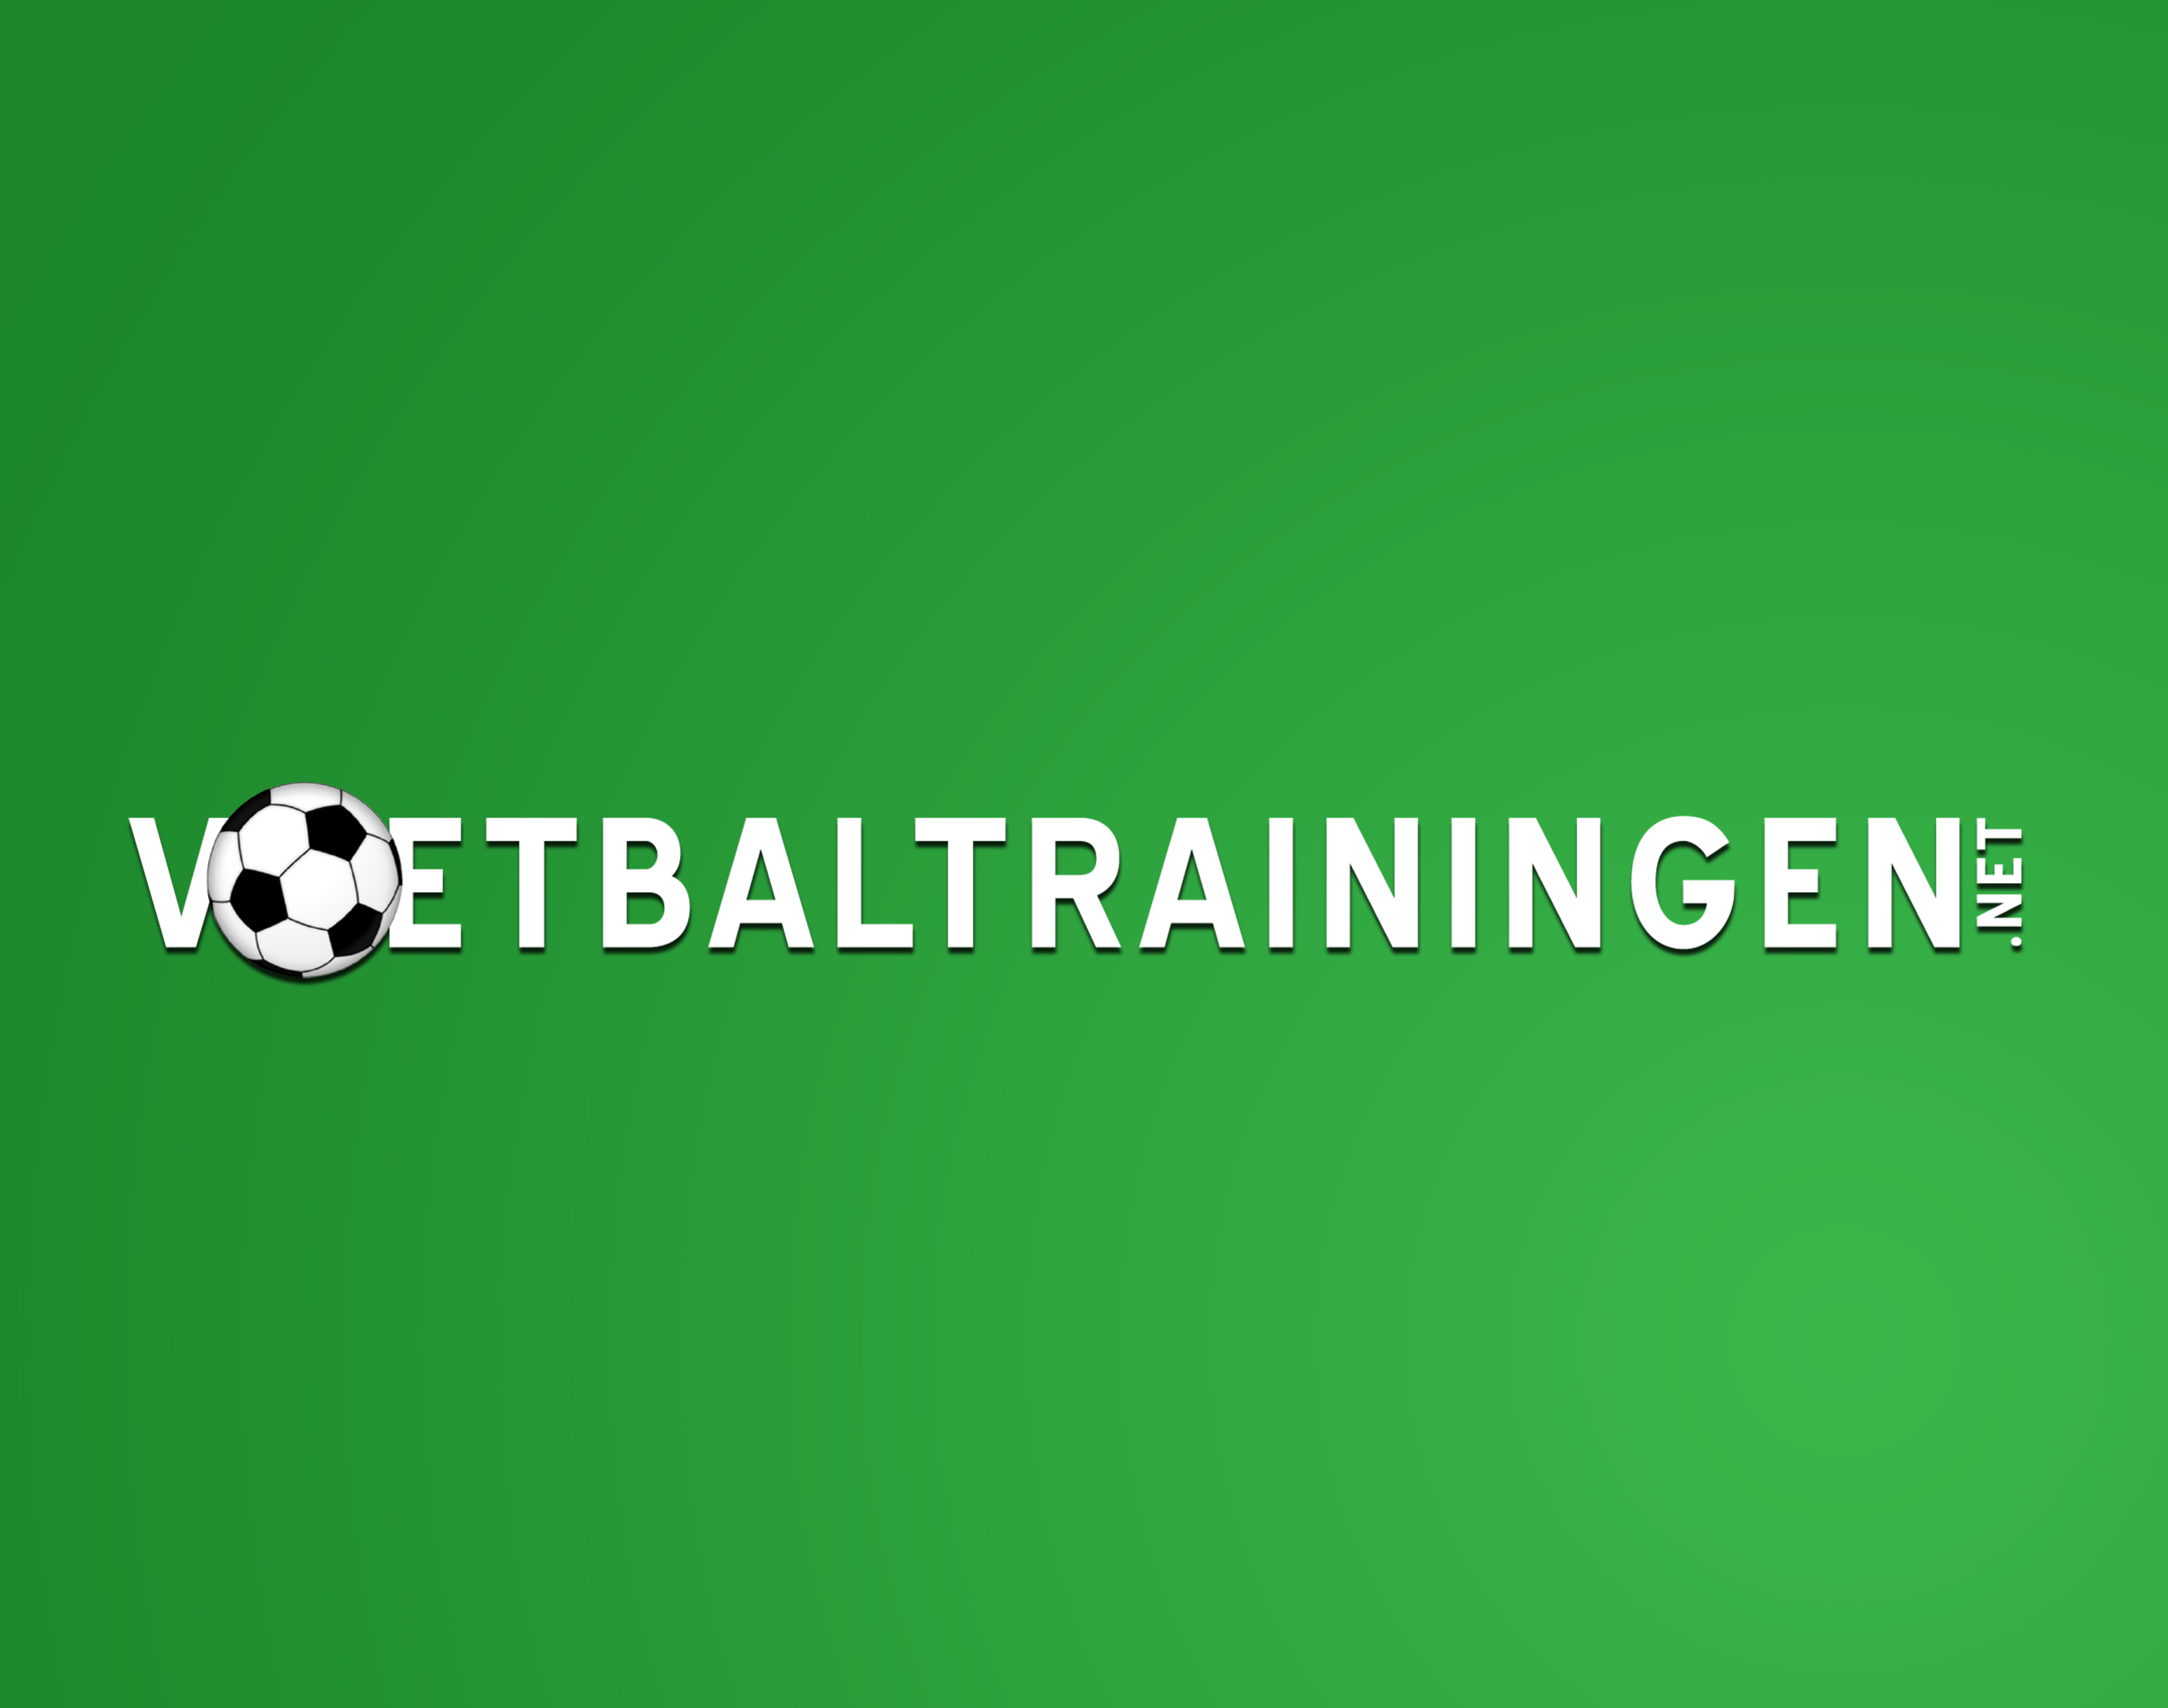 Conditionele voetbaltraining